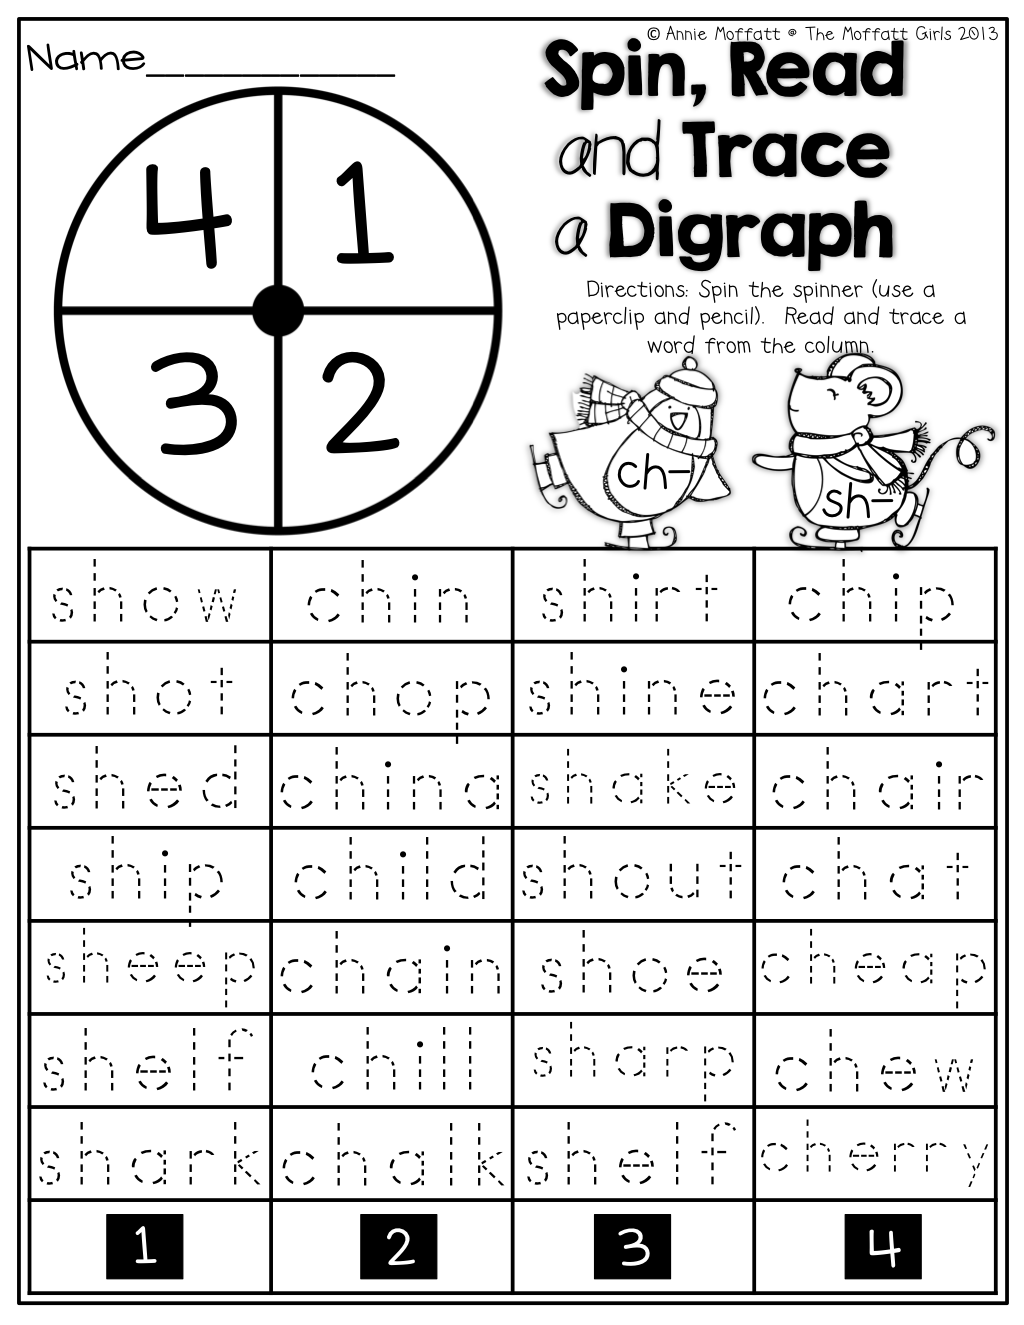 Spin Read And Trace A Digraph Ch And Sh